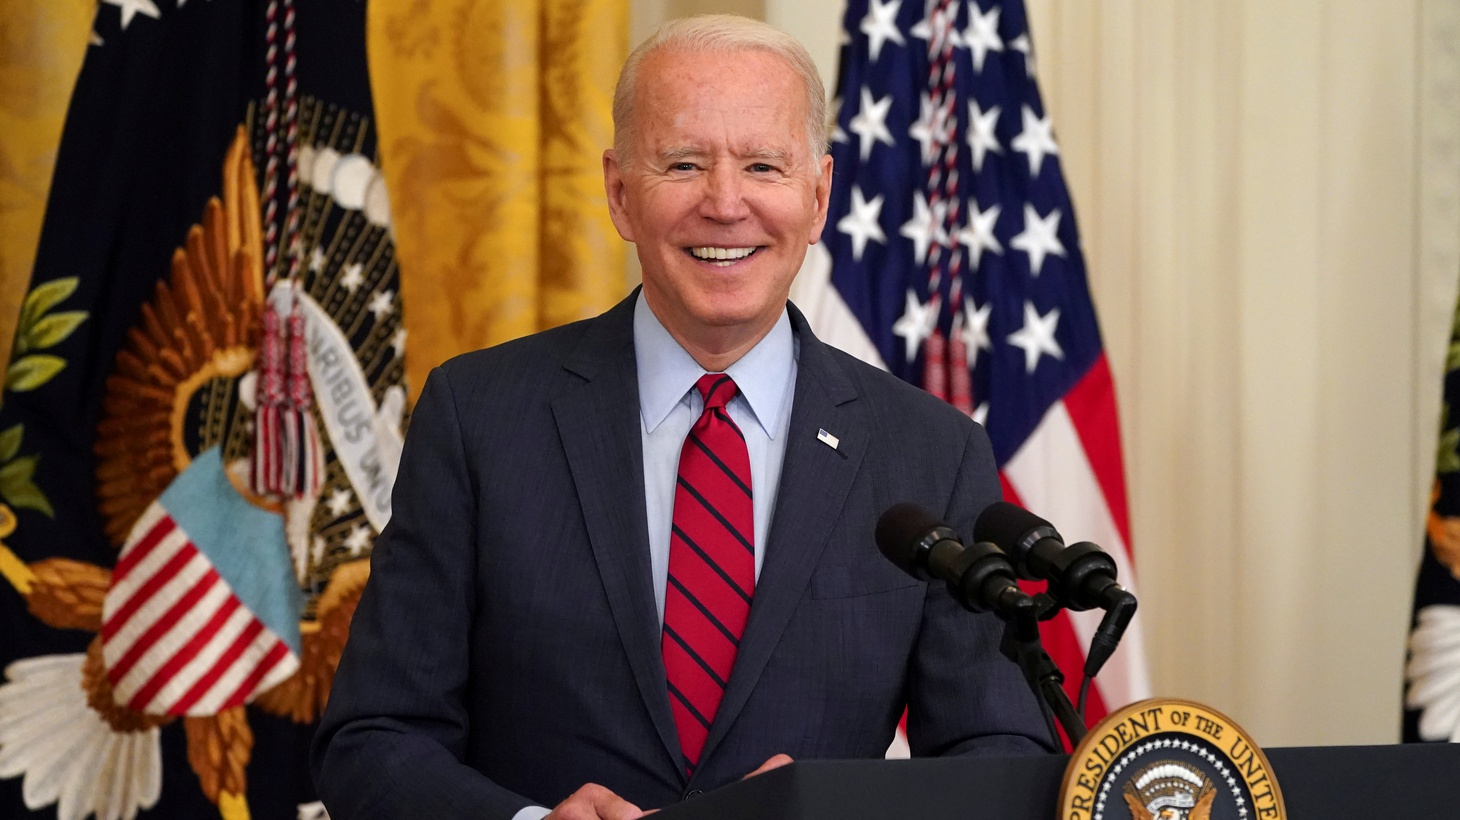 U.S. President Joe Biden smiles as he delivers remarks on the bipartisan infrastructure deal in the East Room of the White House in Washington, U.S., June 24, 2021.